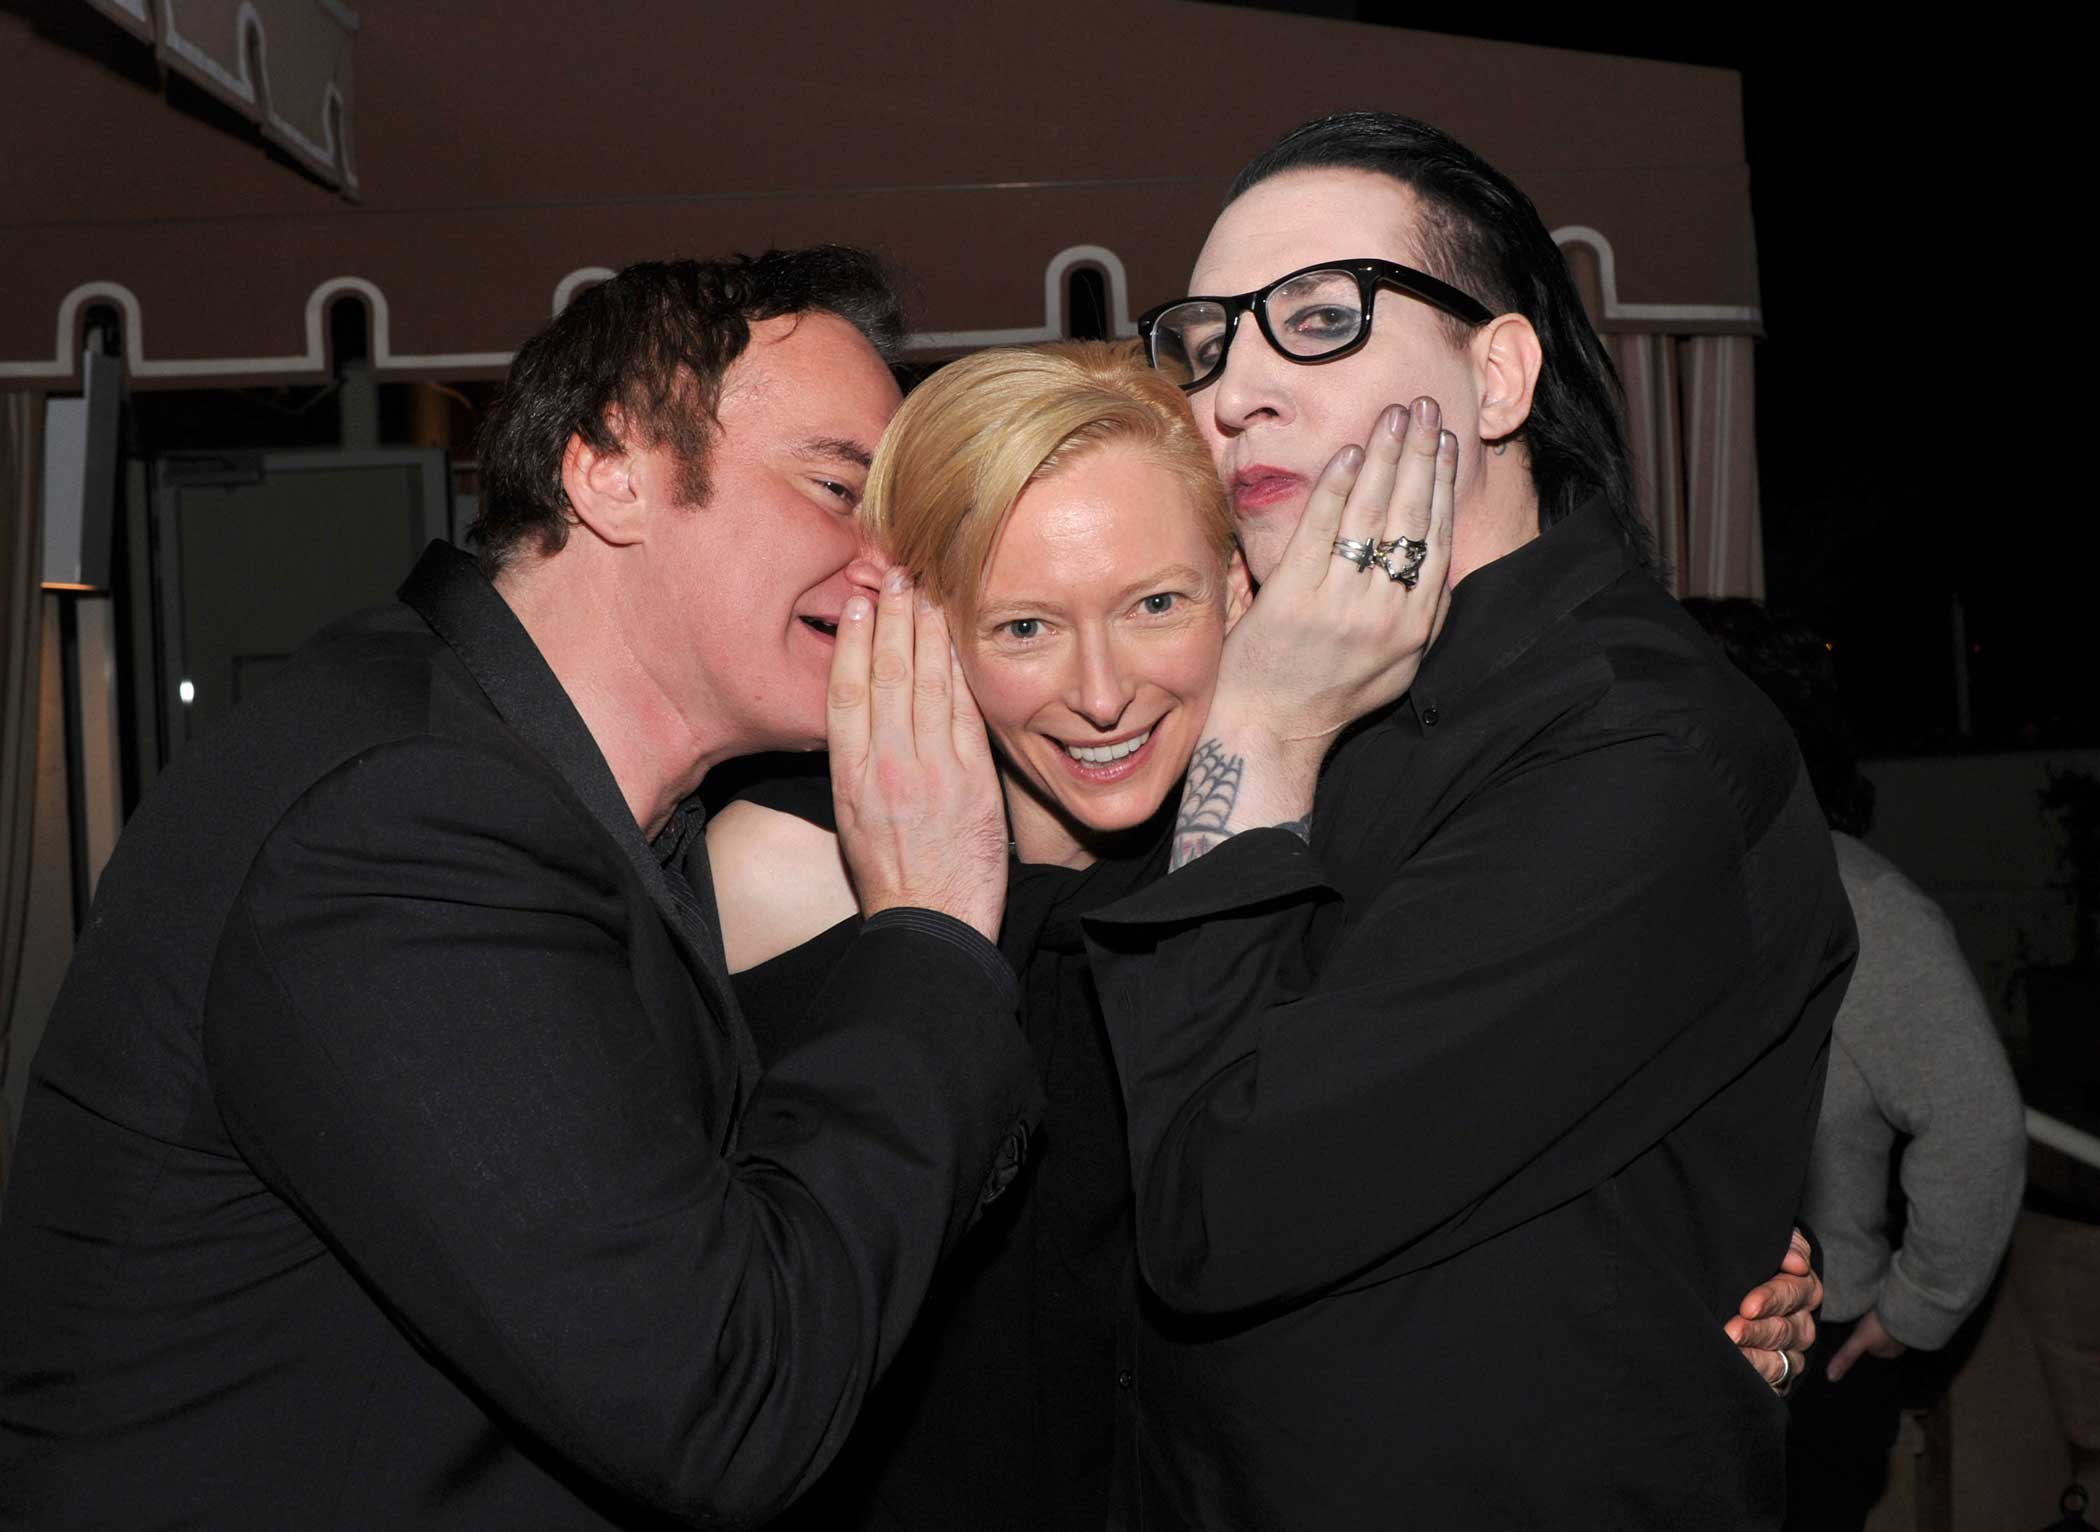 From left: Quentin Tarantino, Tilda Swinton and Marilyn Manson attend the I Am Love reception on Jan. 13, 2011 in West Hollywood, Calif.